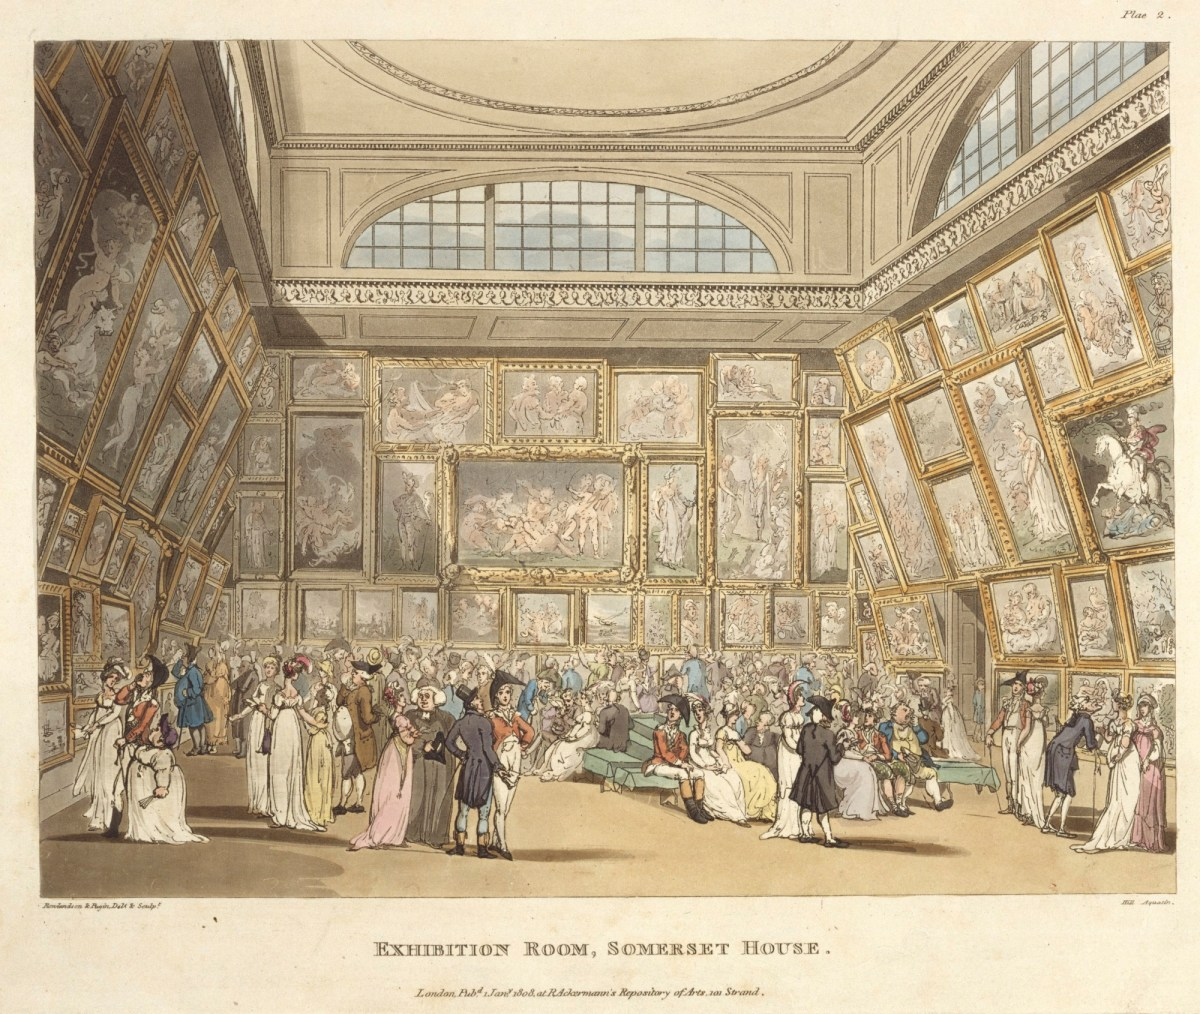 Exhibition Room, Sommerset House